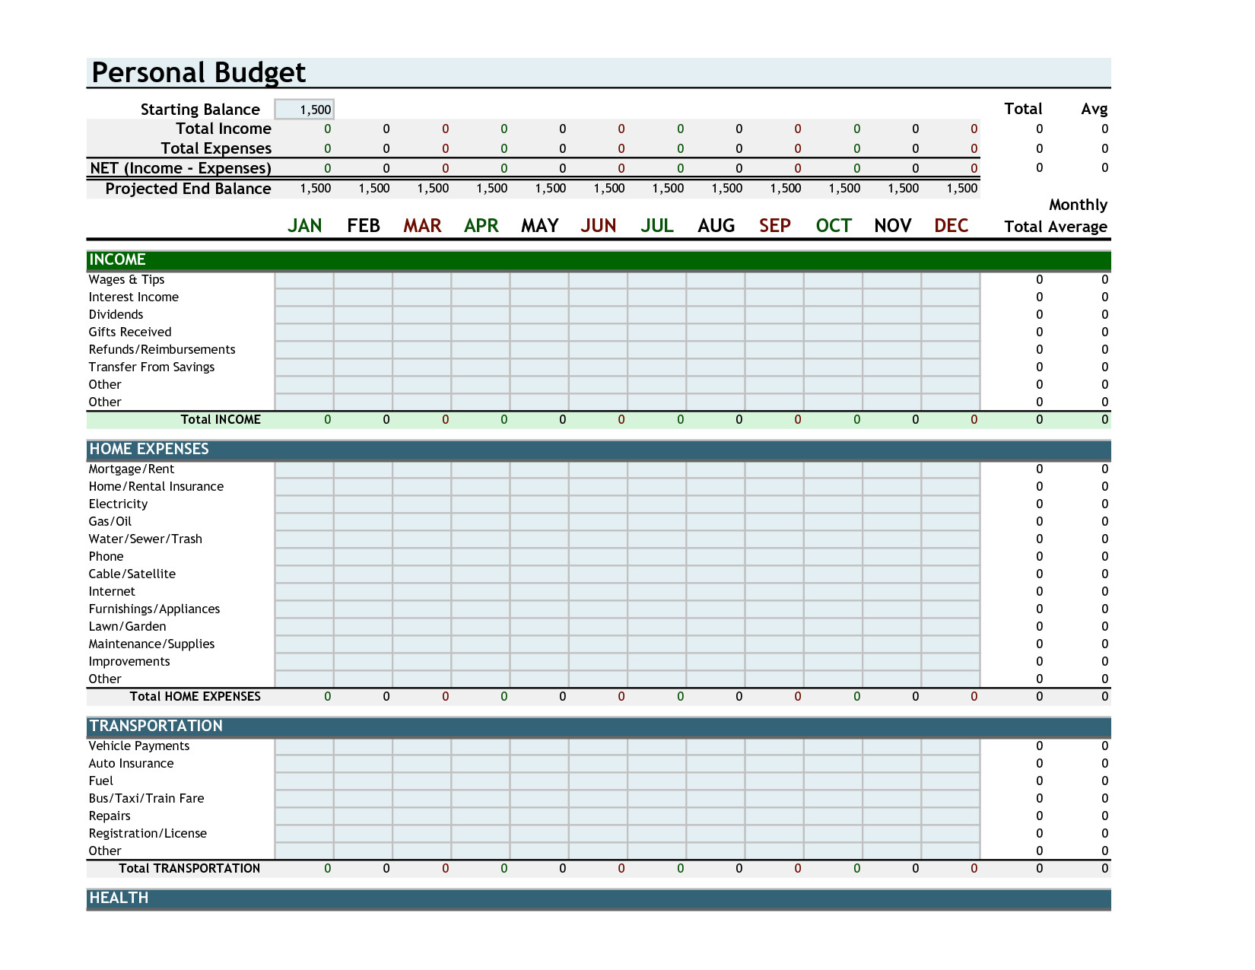 Moving Expenses Spreadsheet Template New Simple Personal Bud For Excel Spreadsheet Template For Expenses